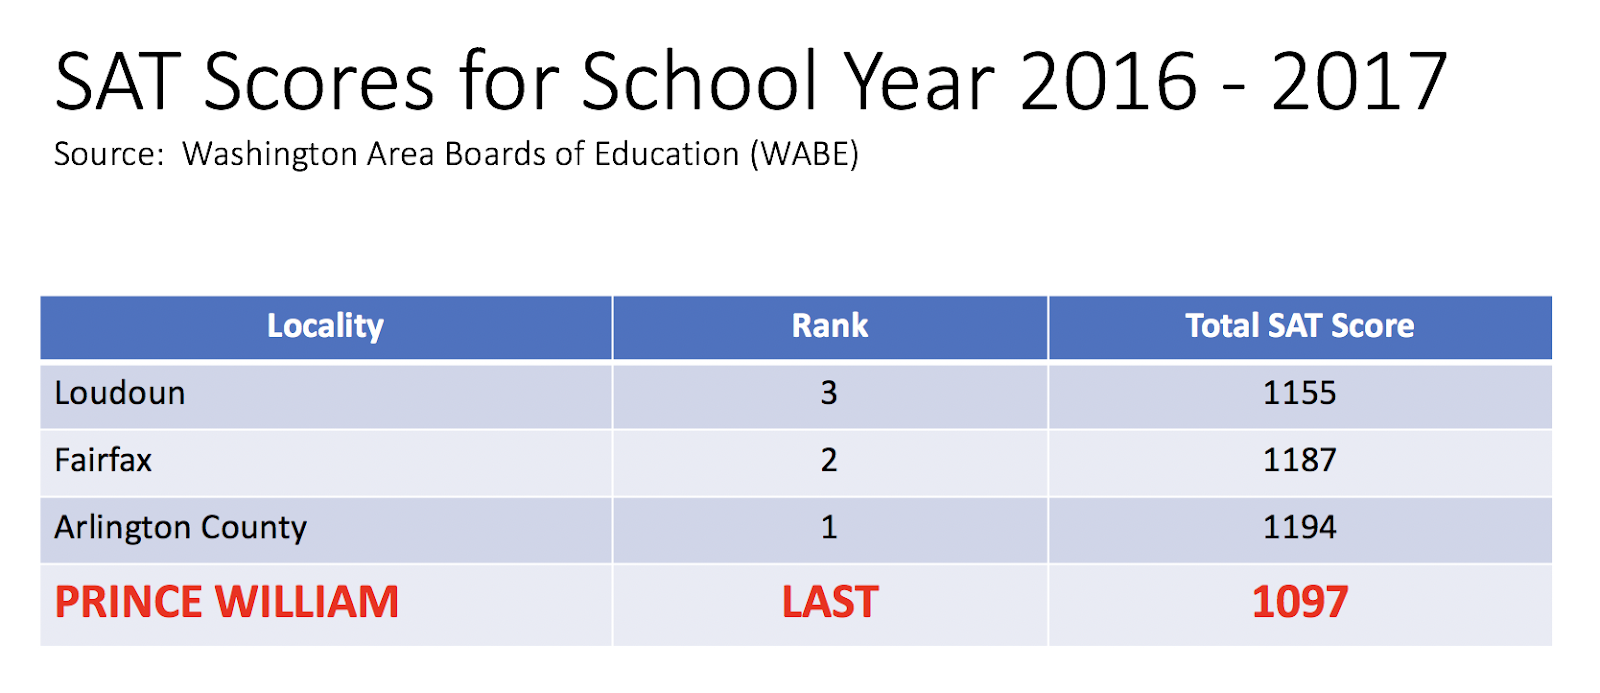 prince william county is consistently second tier and our students are not competitive with surrounding school districts